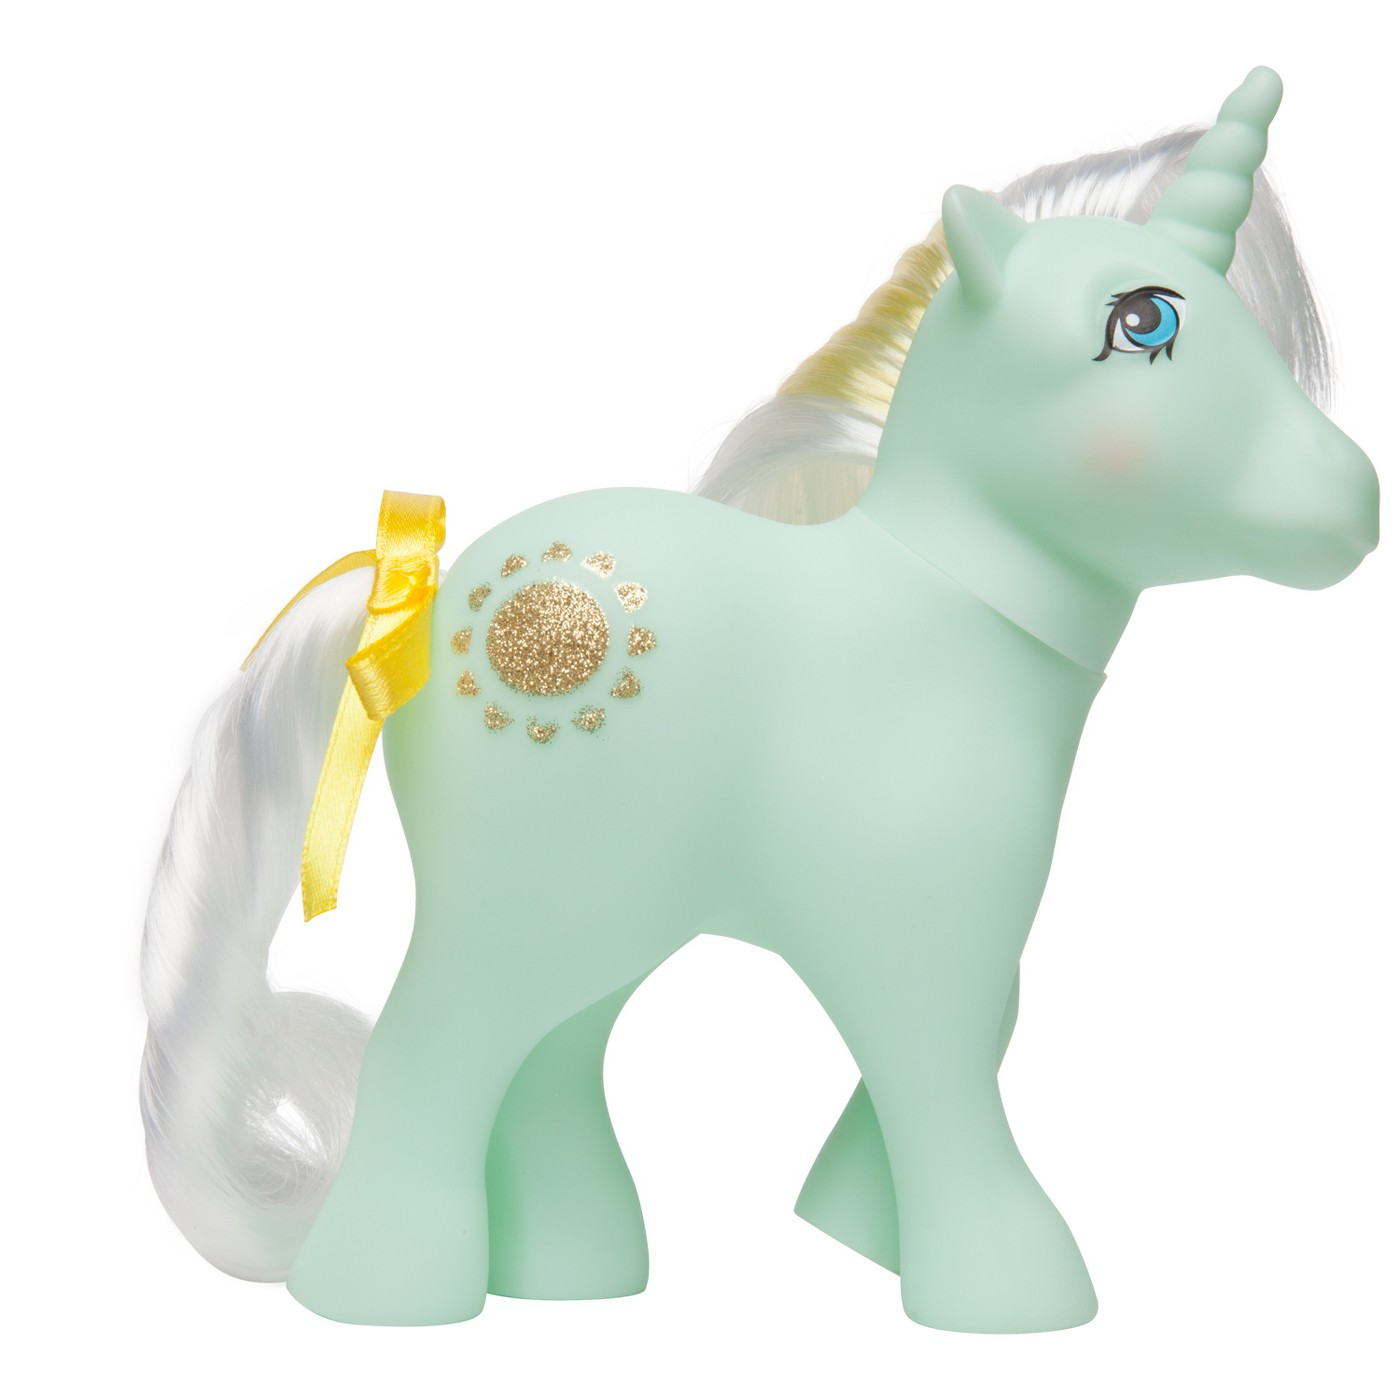 Unicorn Toys Target Third 35th Anniversary Retro Ponies Set Listed On Target Mlp